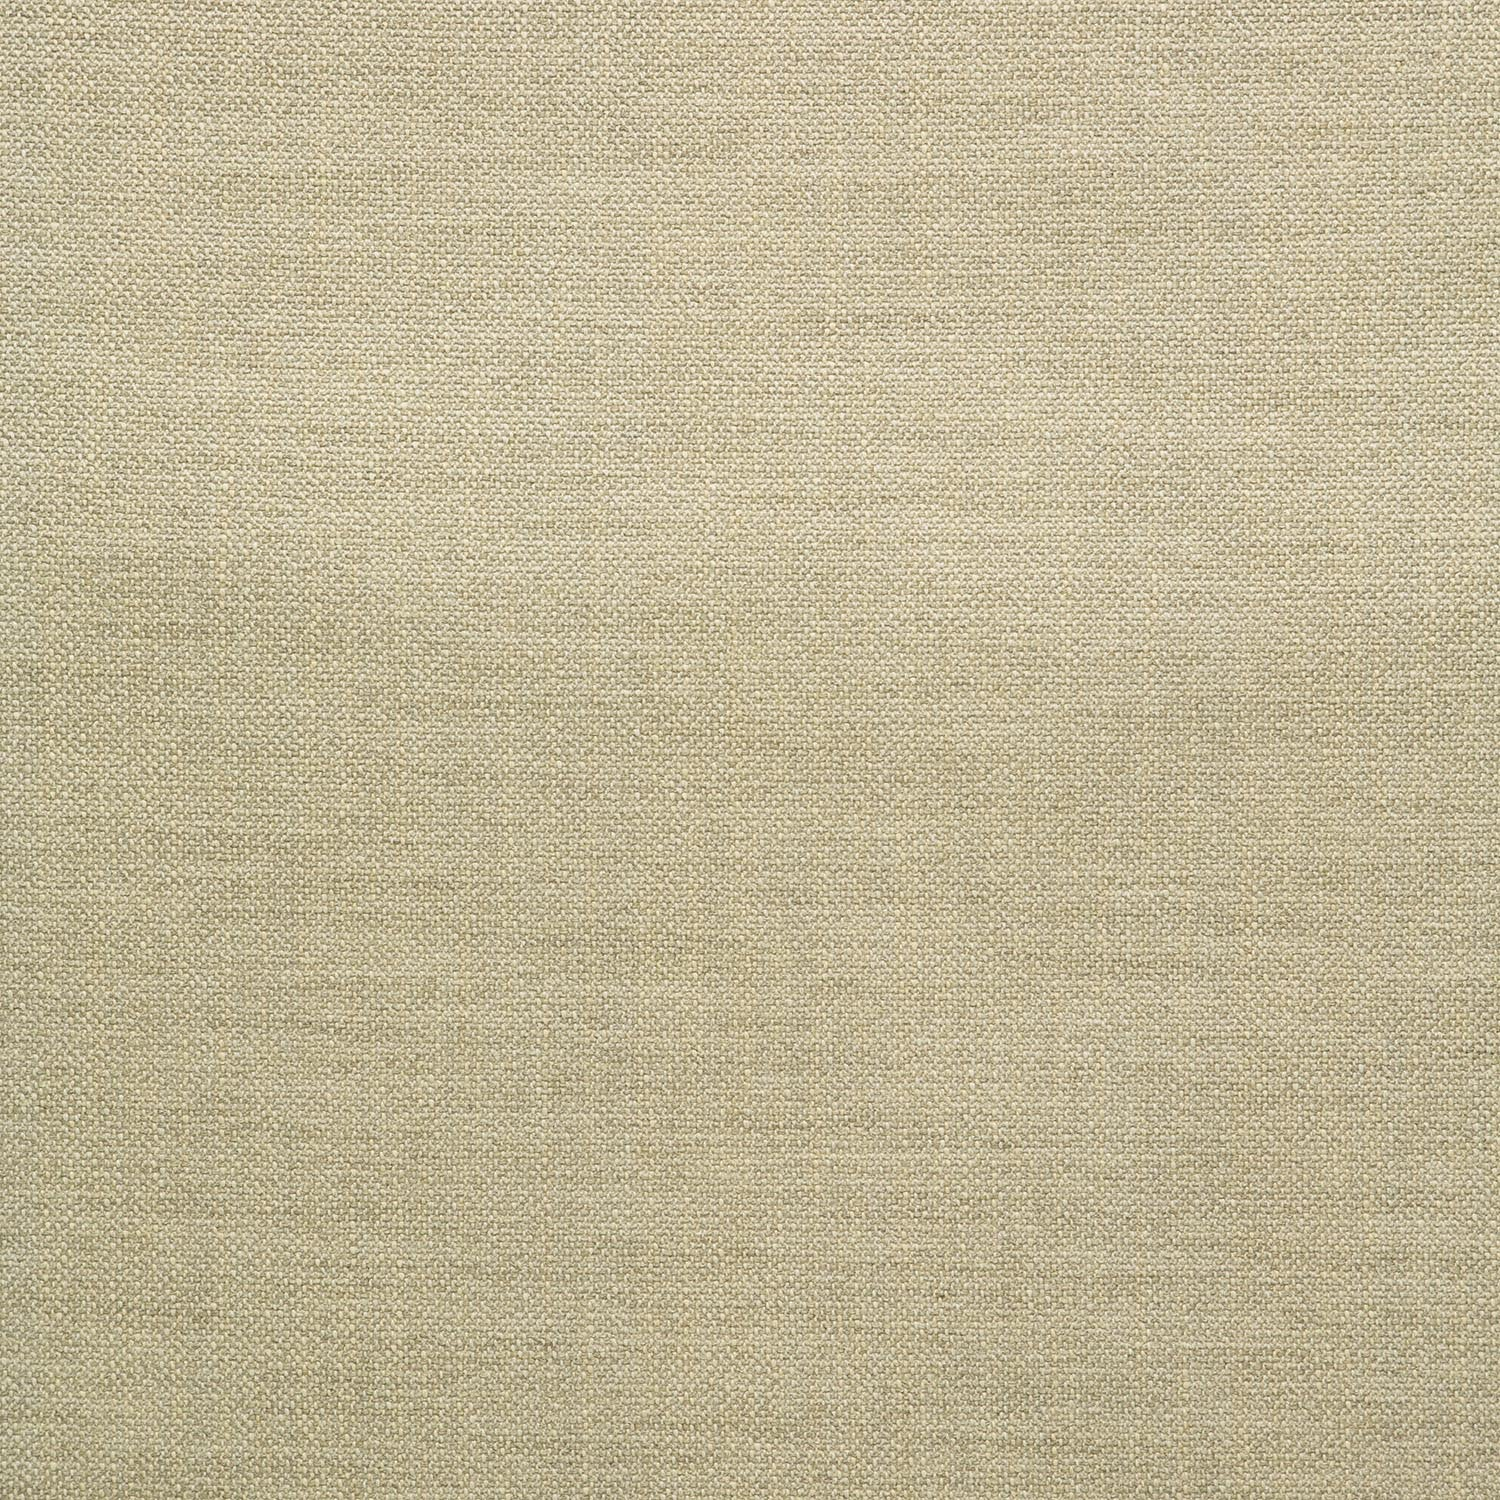 Fabric swatch of a plain beige weave fabric for upholstery